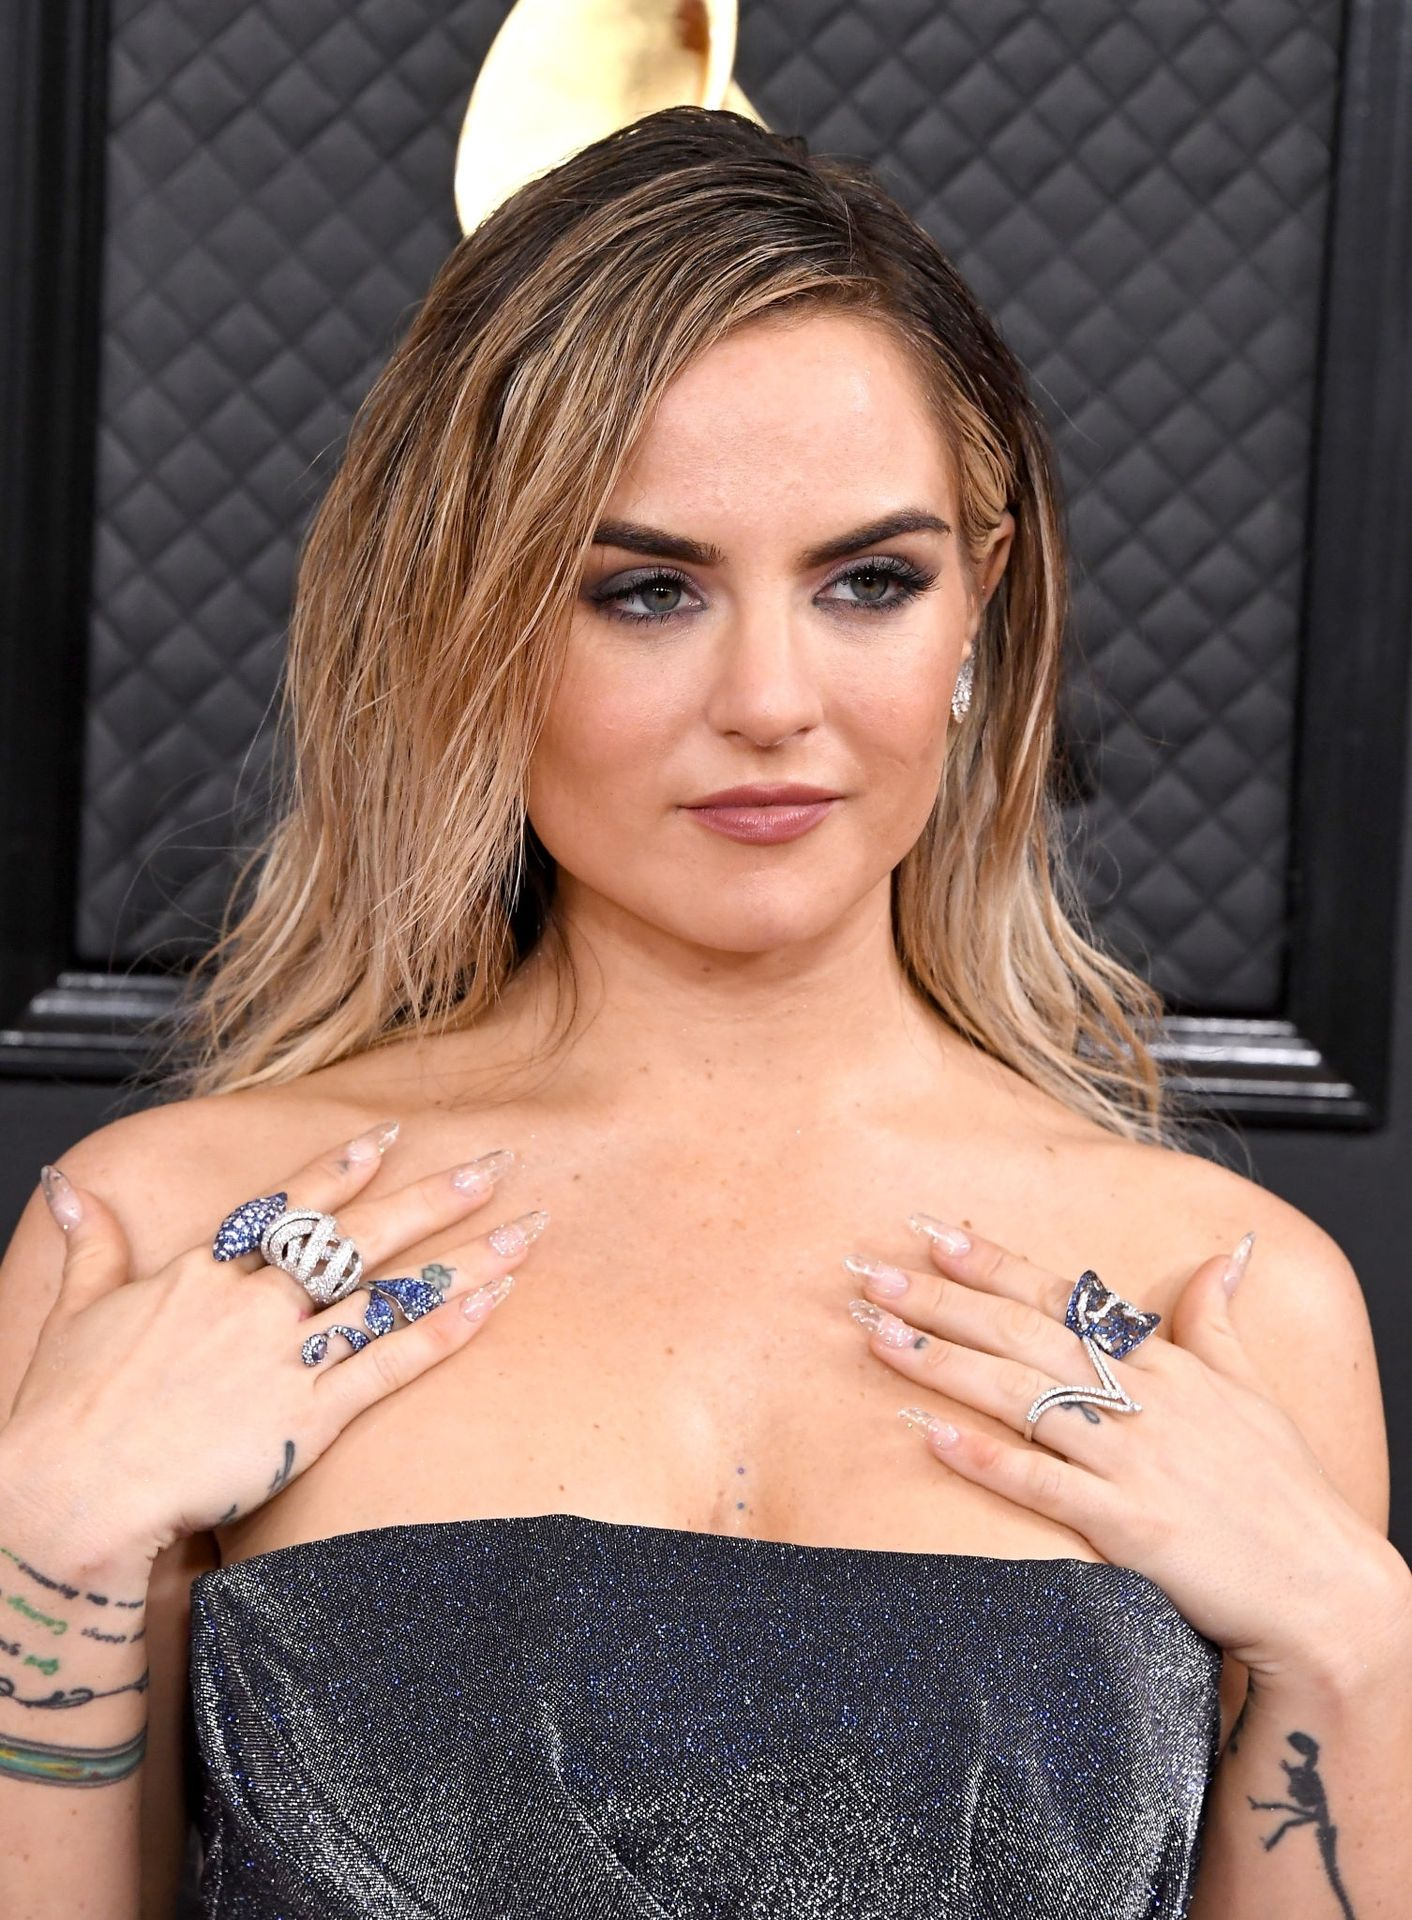 Jojo Shows Her Legs And Cleavage At The 62nd Annual Grammy Awards 0001